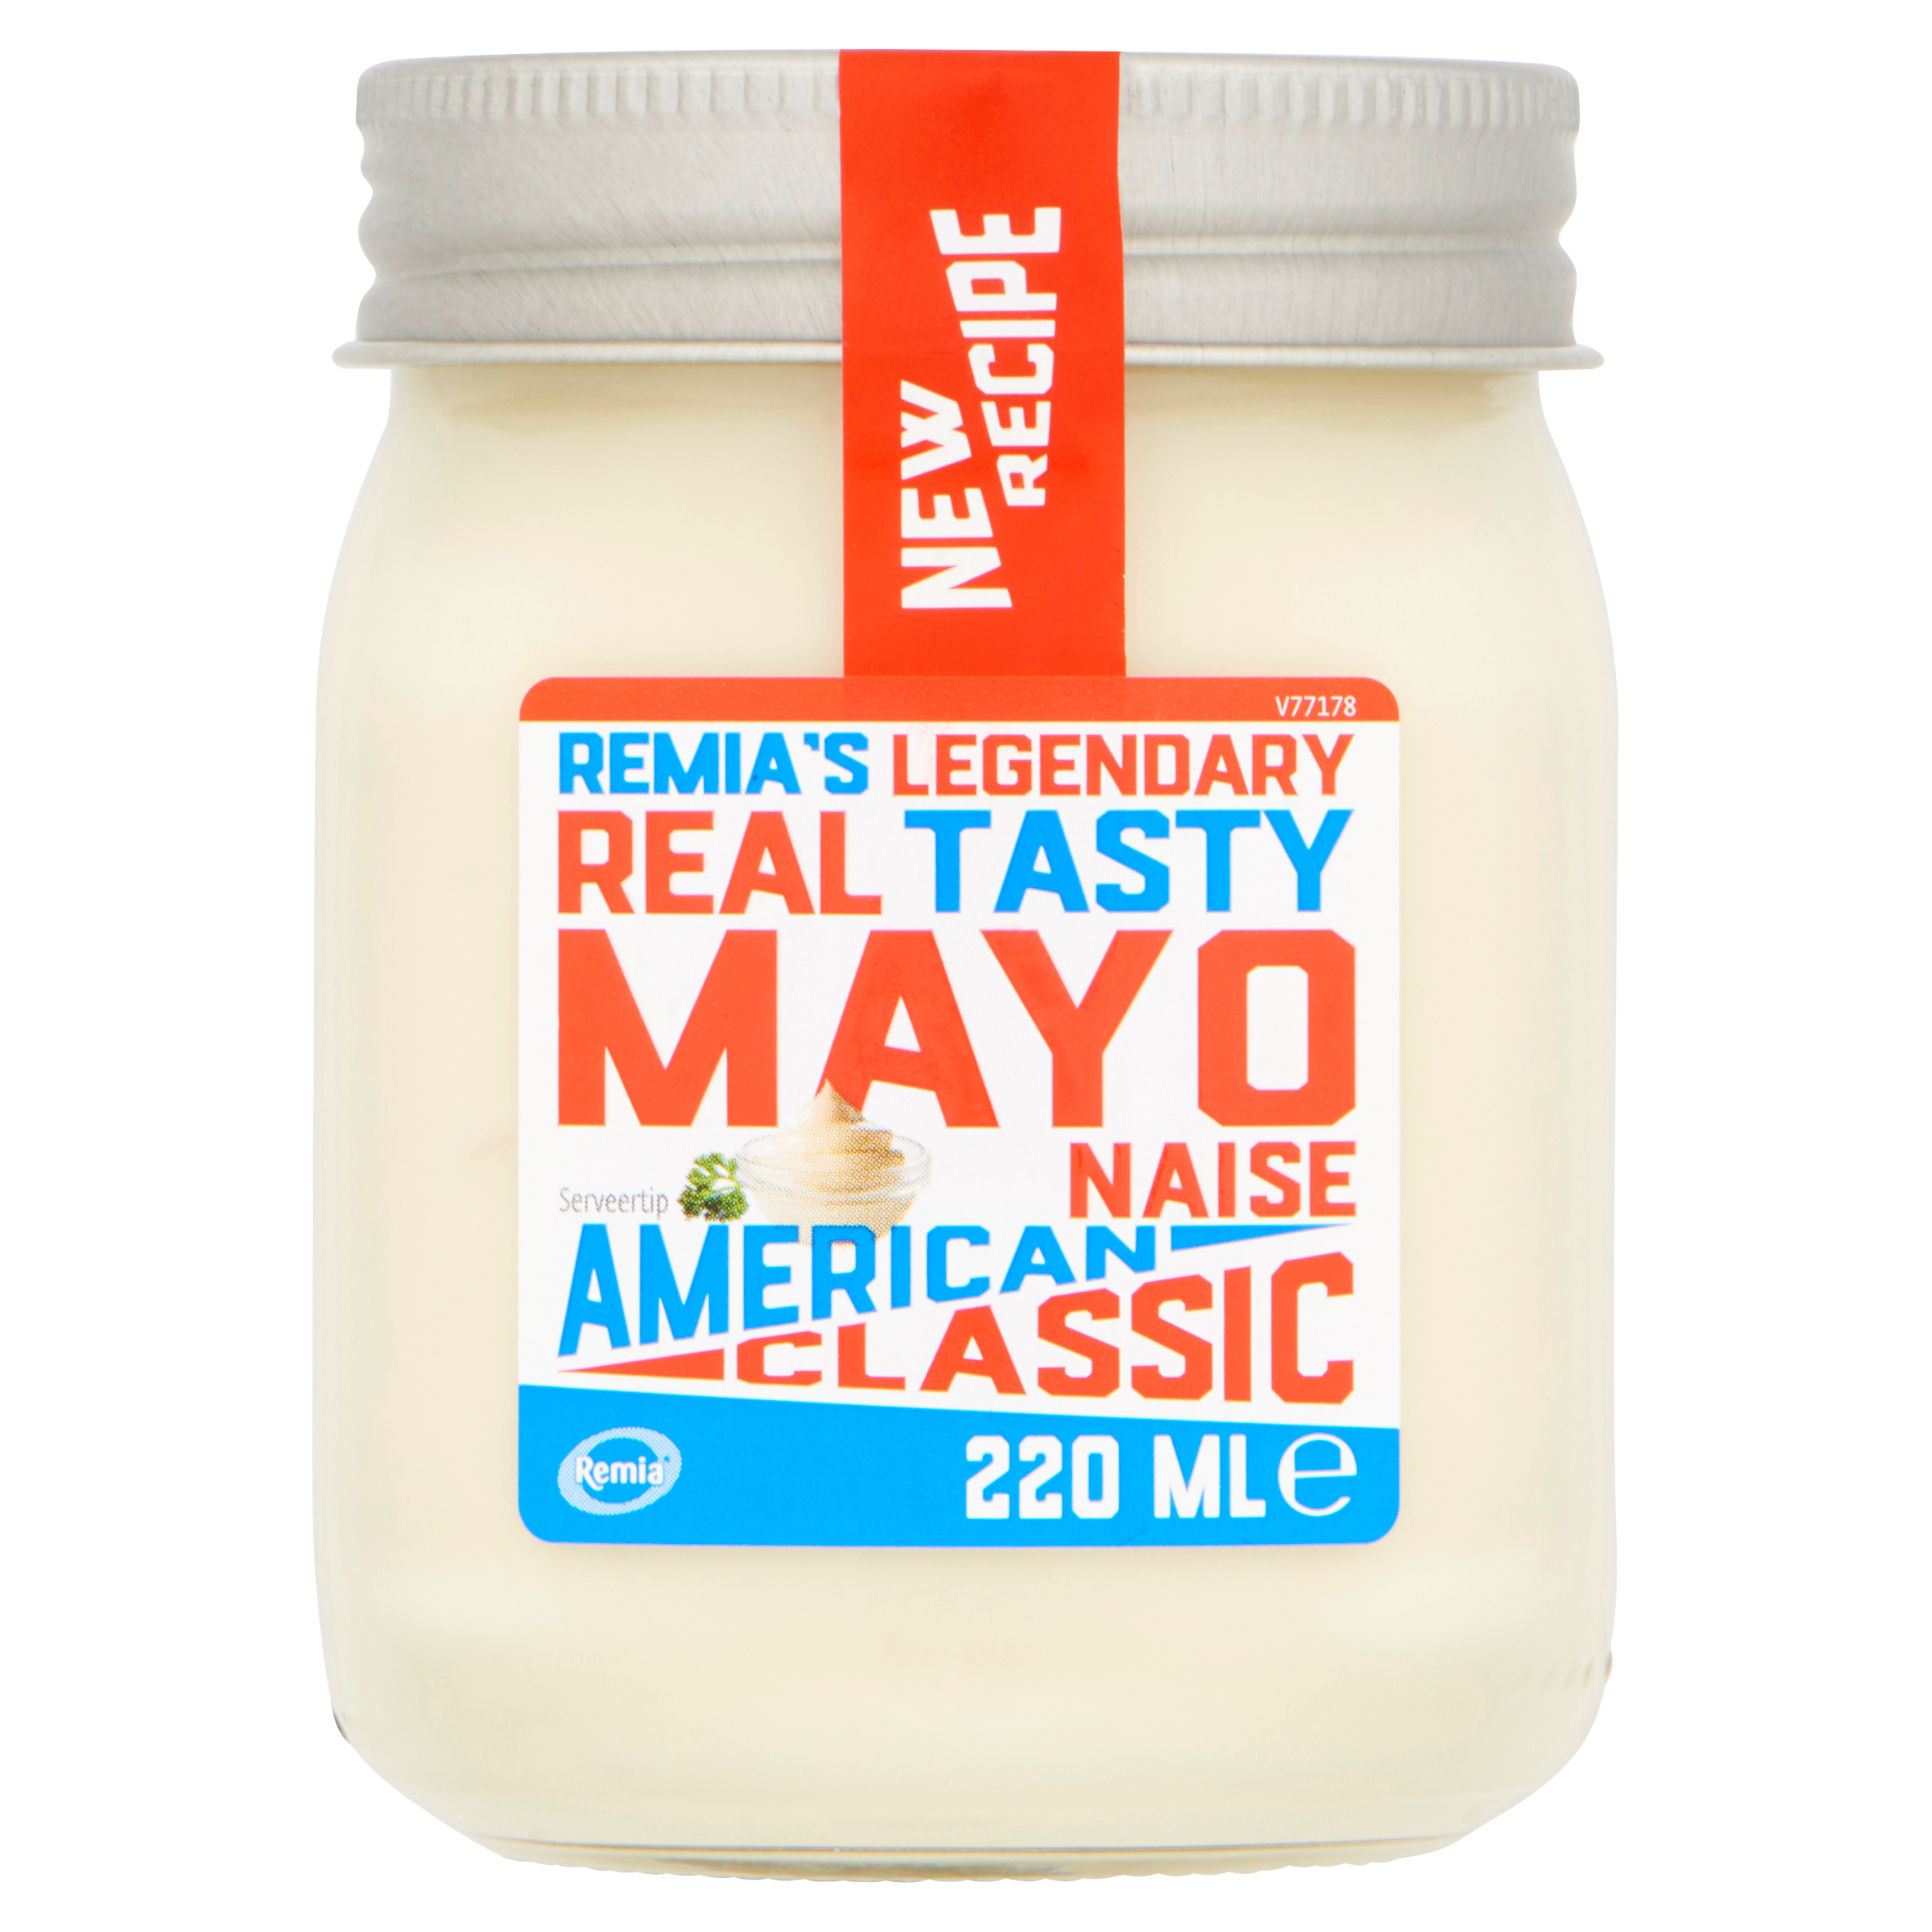 Remia's Legendary Real Tasty Mayonaise American Classic 220 ml